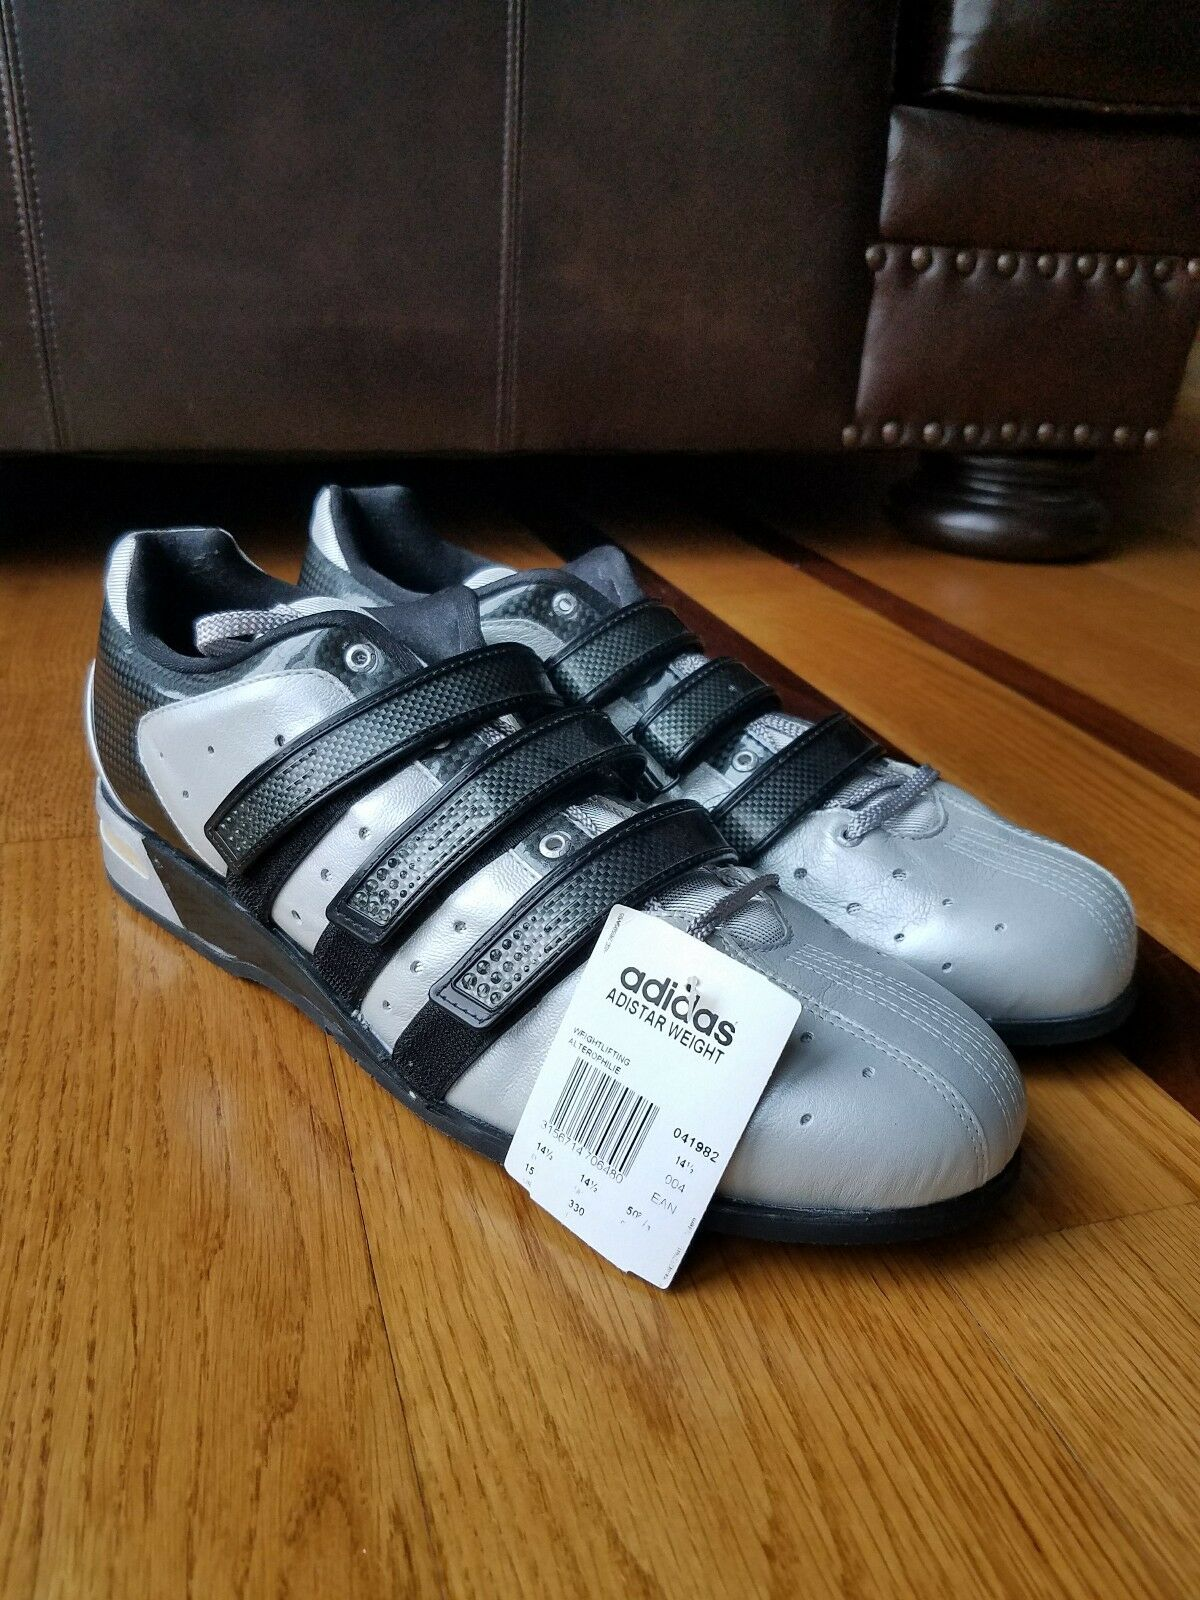 NEW Vintage 2005 Adidas Adistar Olympic Weightlifting shoes Sz 15 Made Germany